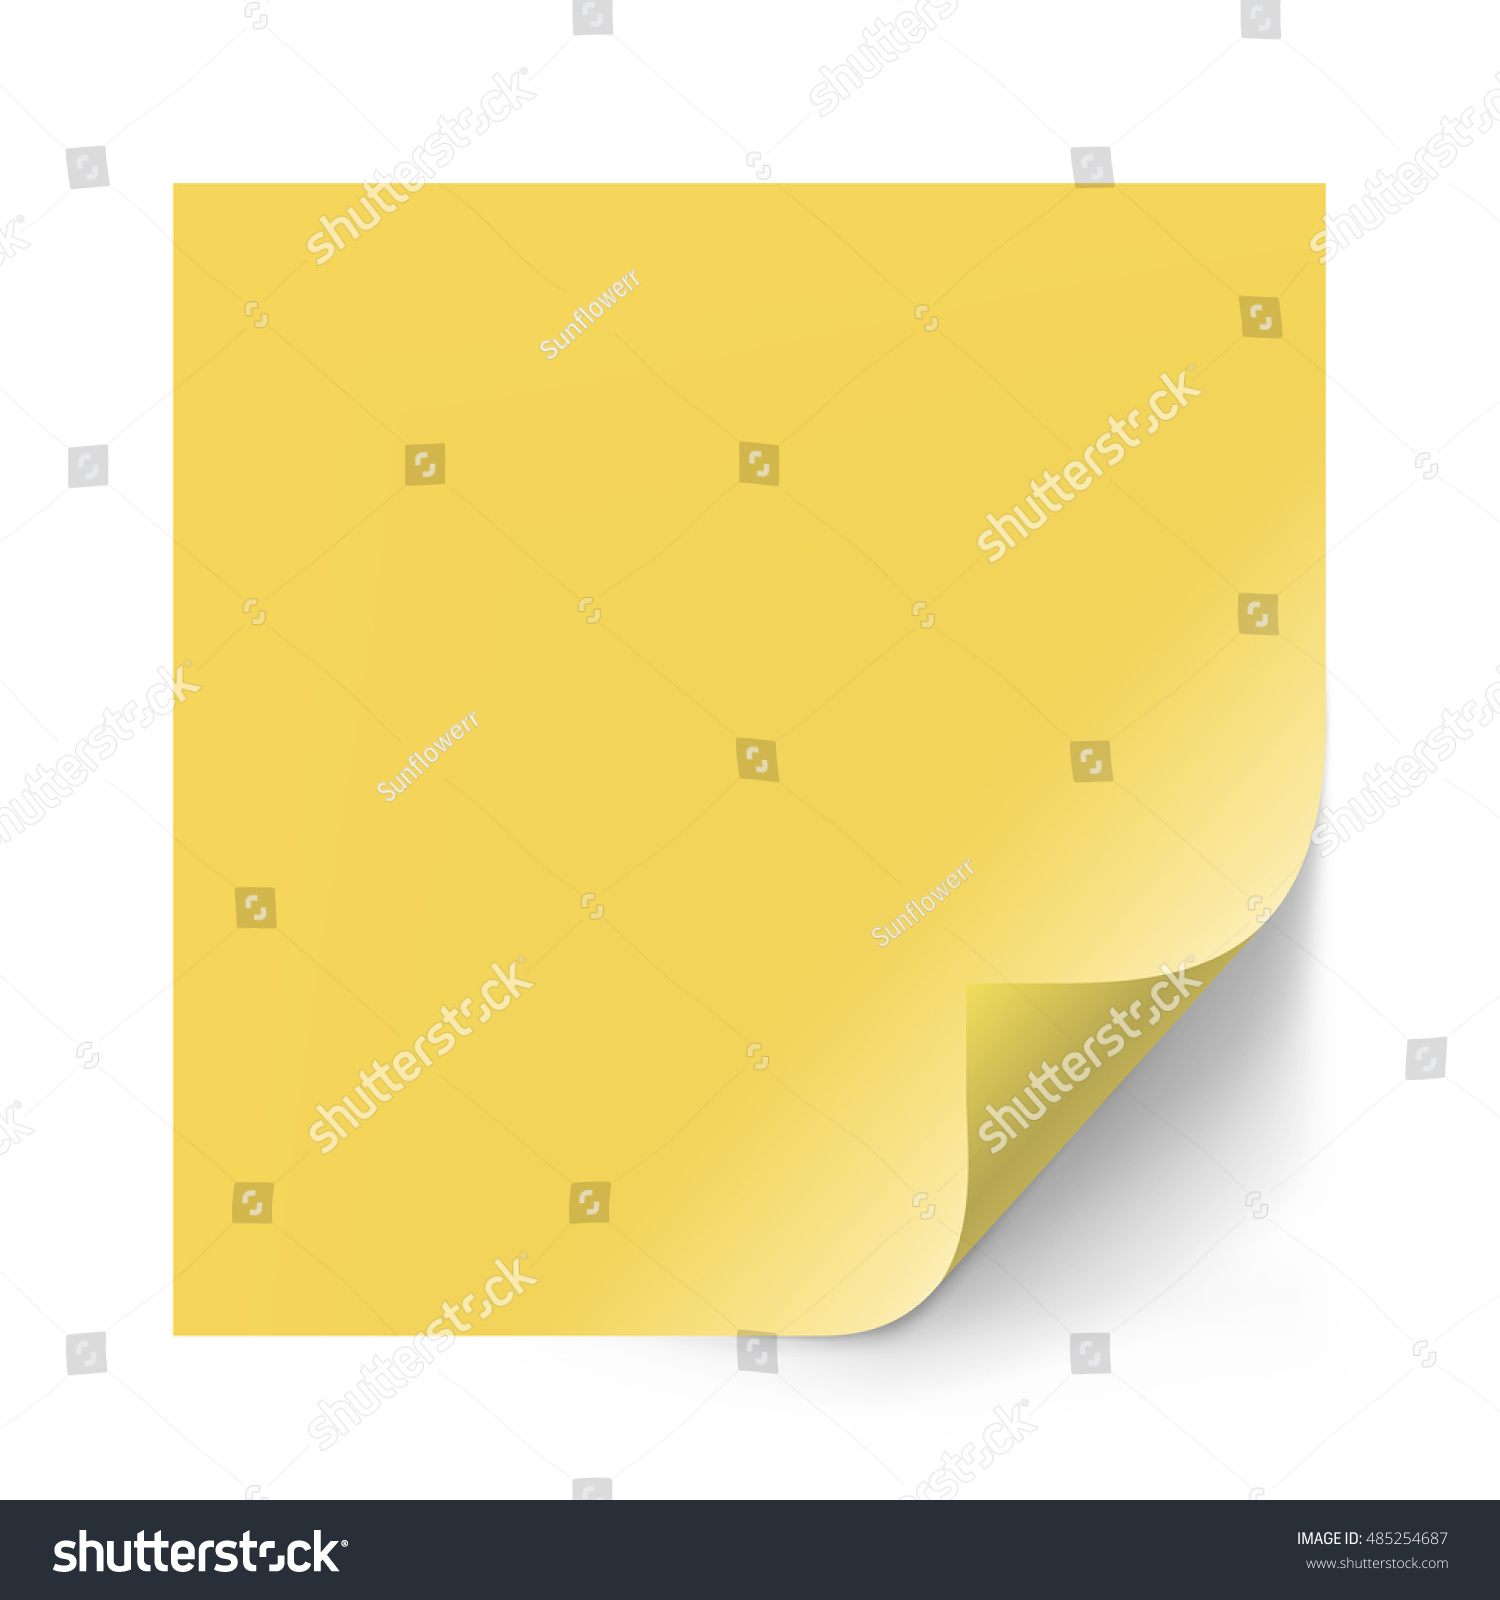 vector yellow sticker paper note memo stock vector 485254687 vector yellow sticker paper note for memo and notice sticky page curl blank